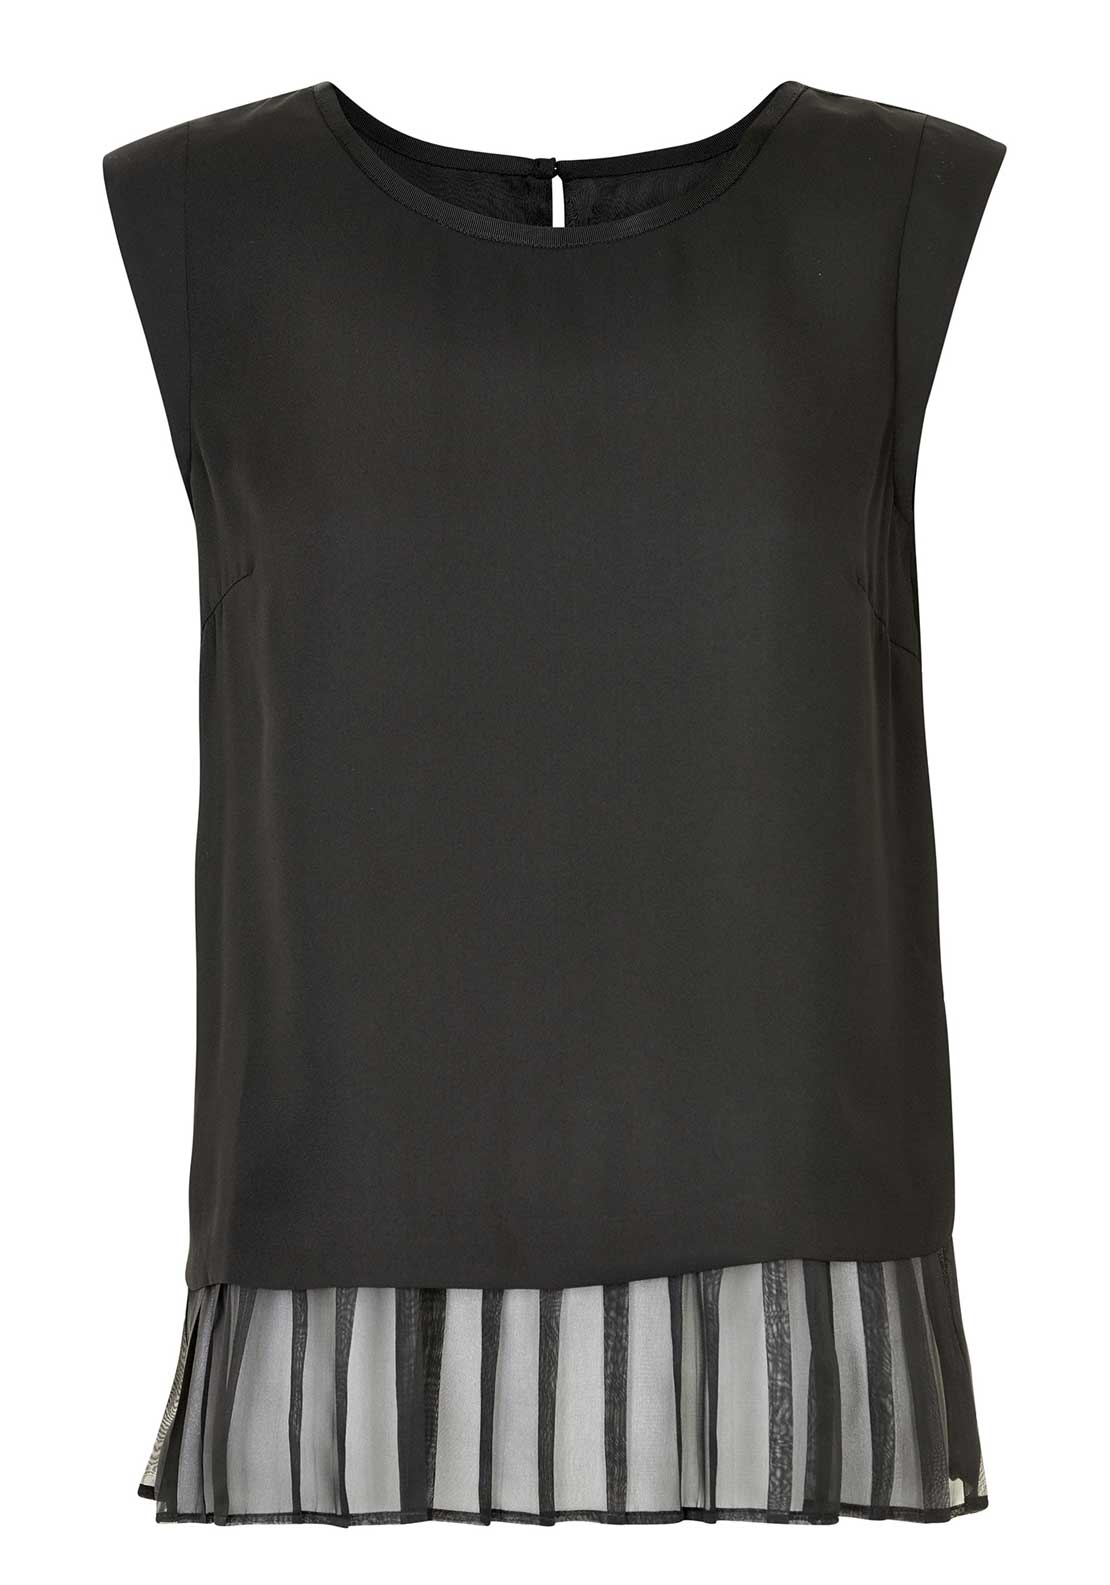 Inwear Amira Pleated Hem Sleeveless Top, Black